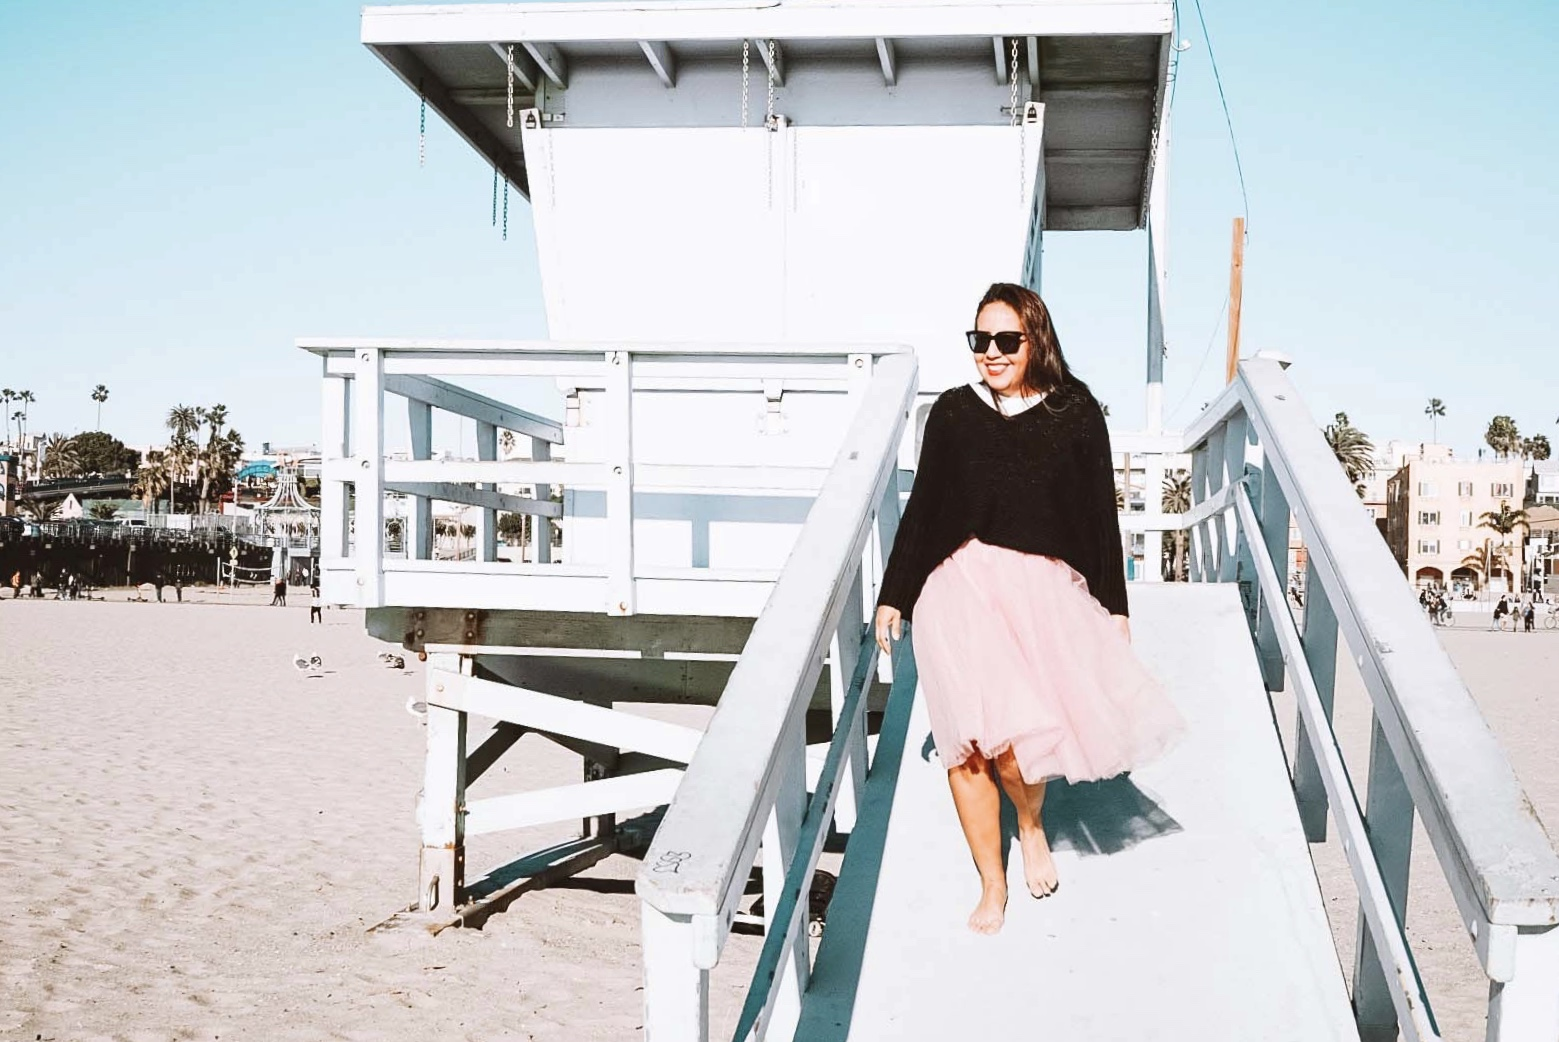 Woman in a pink tutu at the beach smiling wearing sunglasses waling down a lifeguard tower.